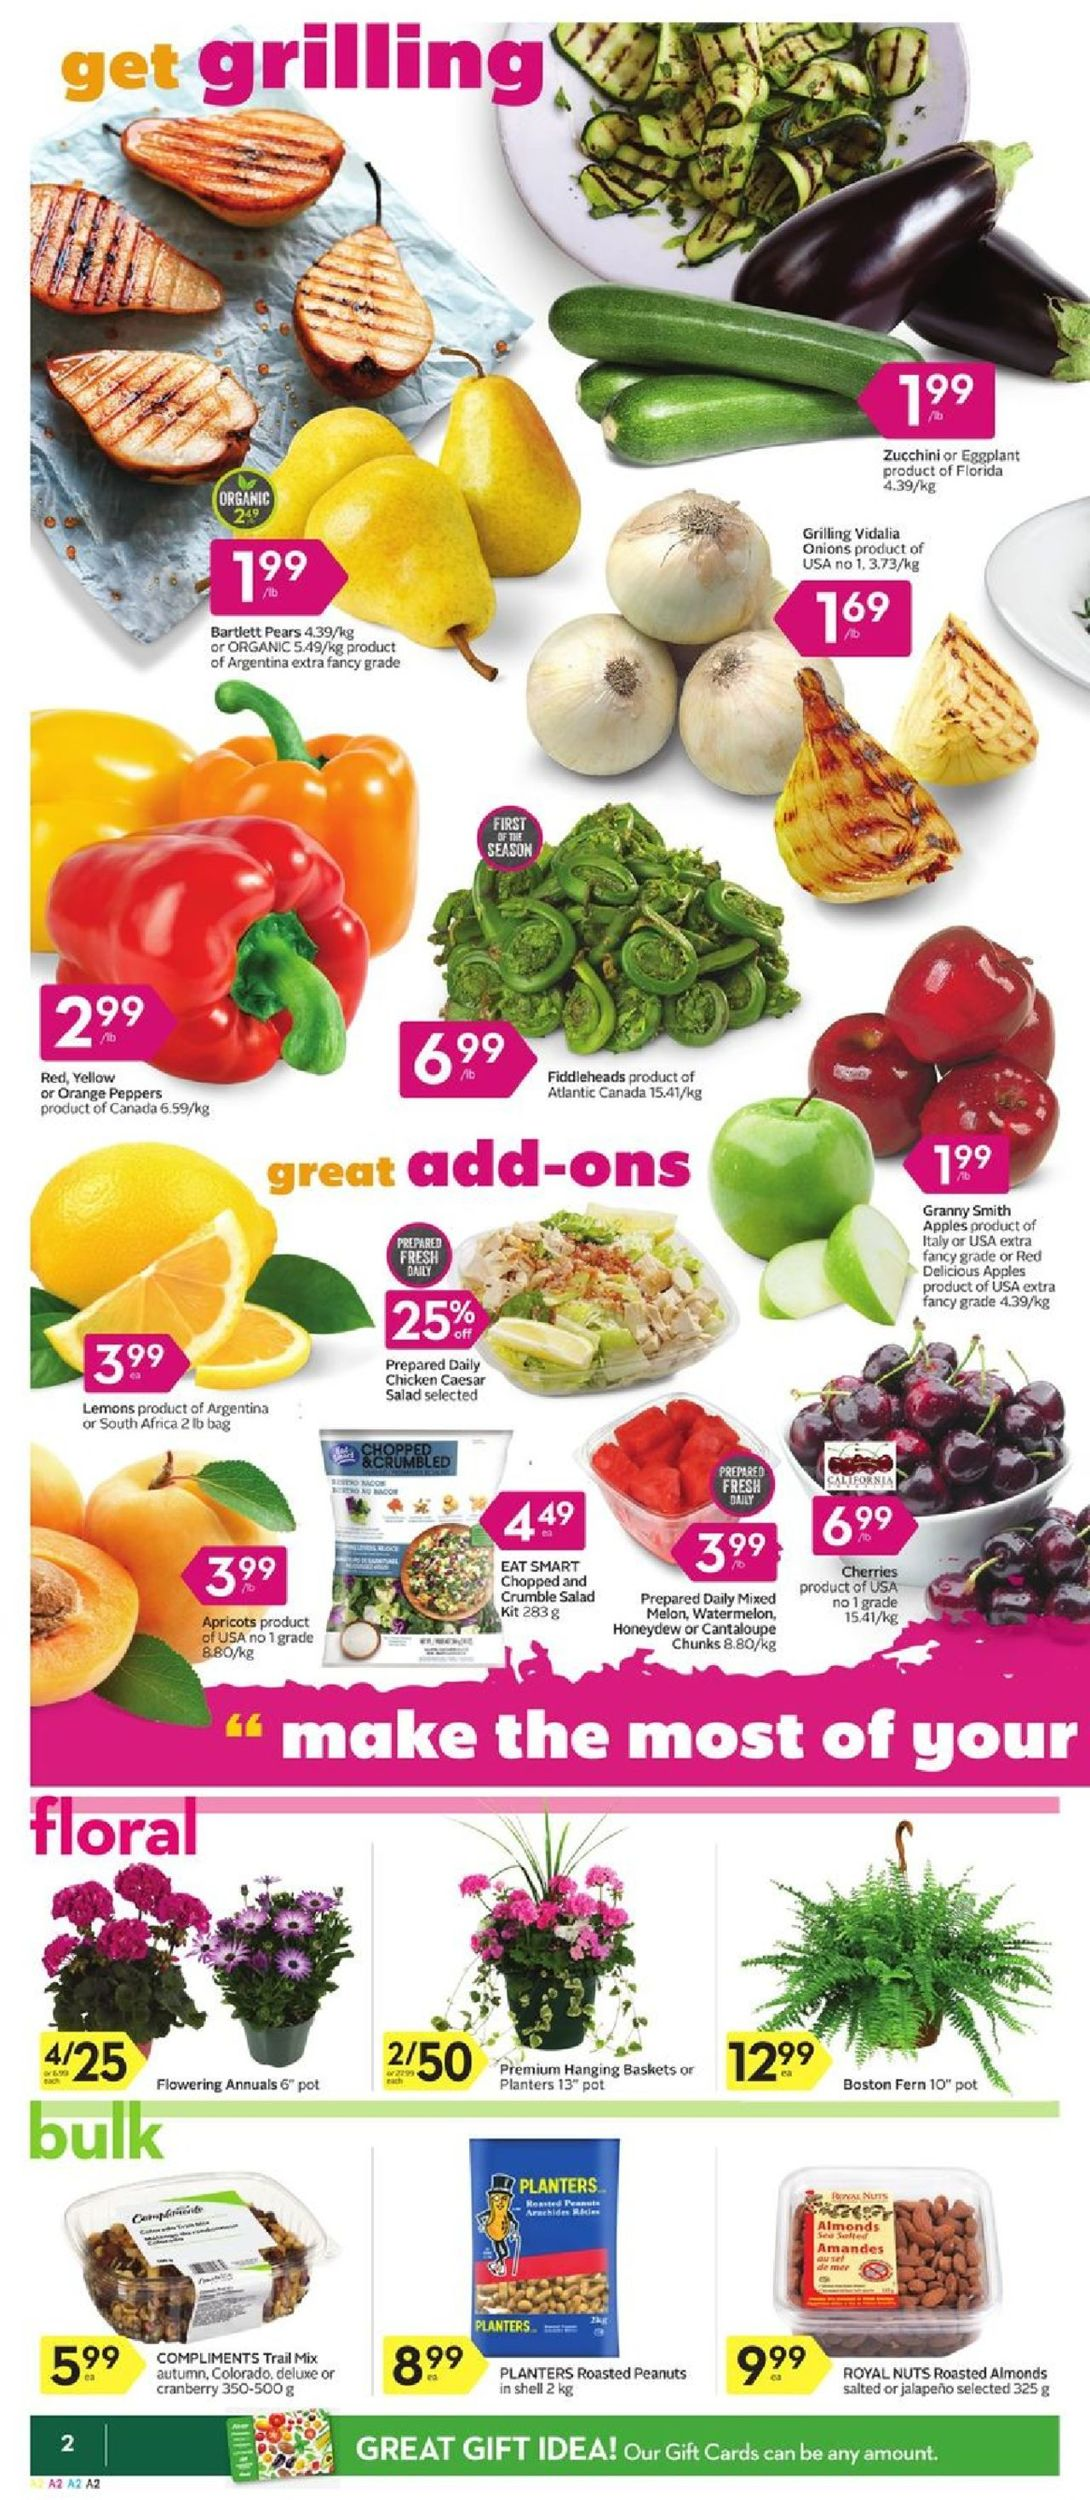 Sobeys Flyer - 05/16-05/22/2019 (Page 2)